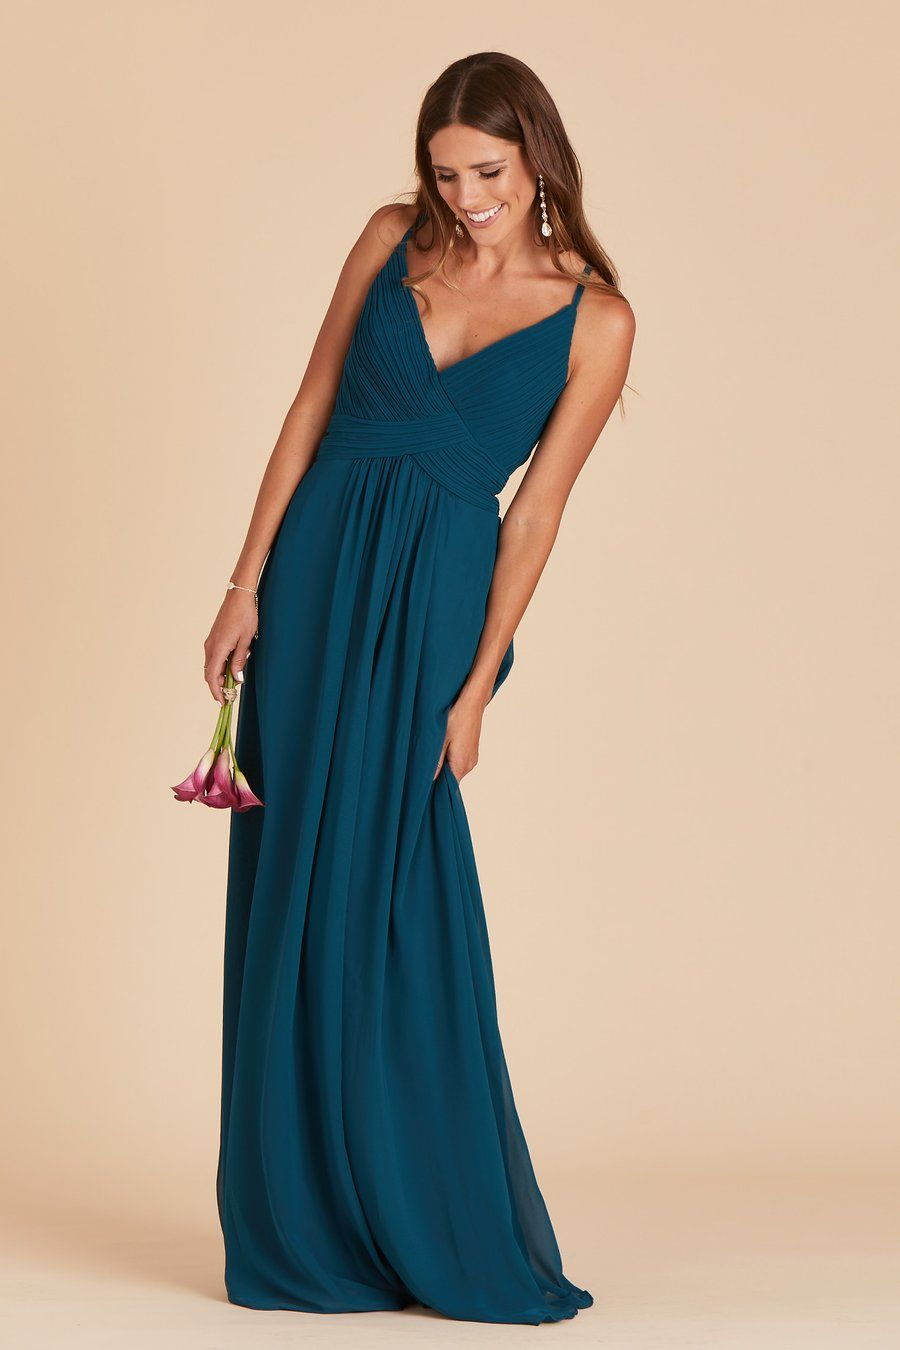 1b0a6b4e19af Mikey Dress - Peacock in 2019 | EMERALD GOWNS | Teal bridesmaid ...